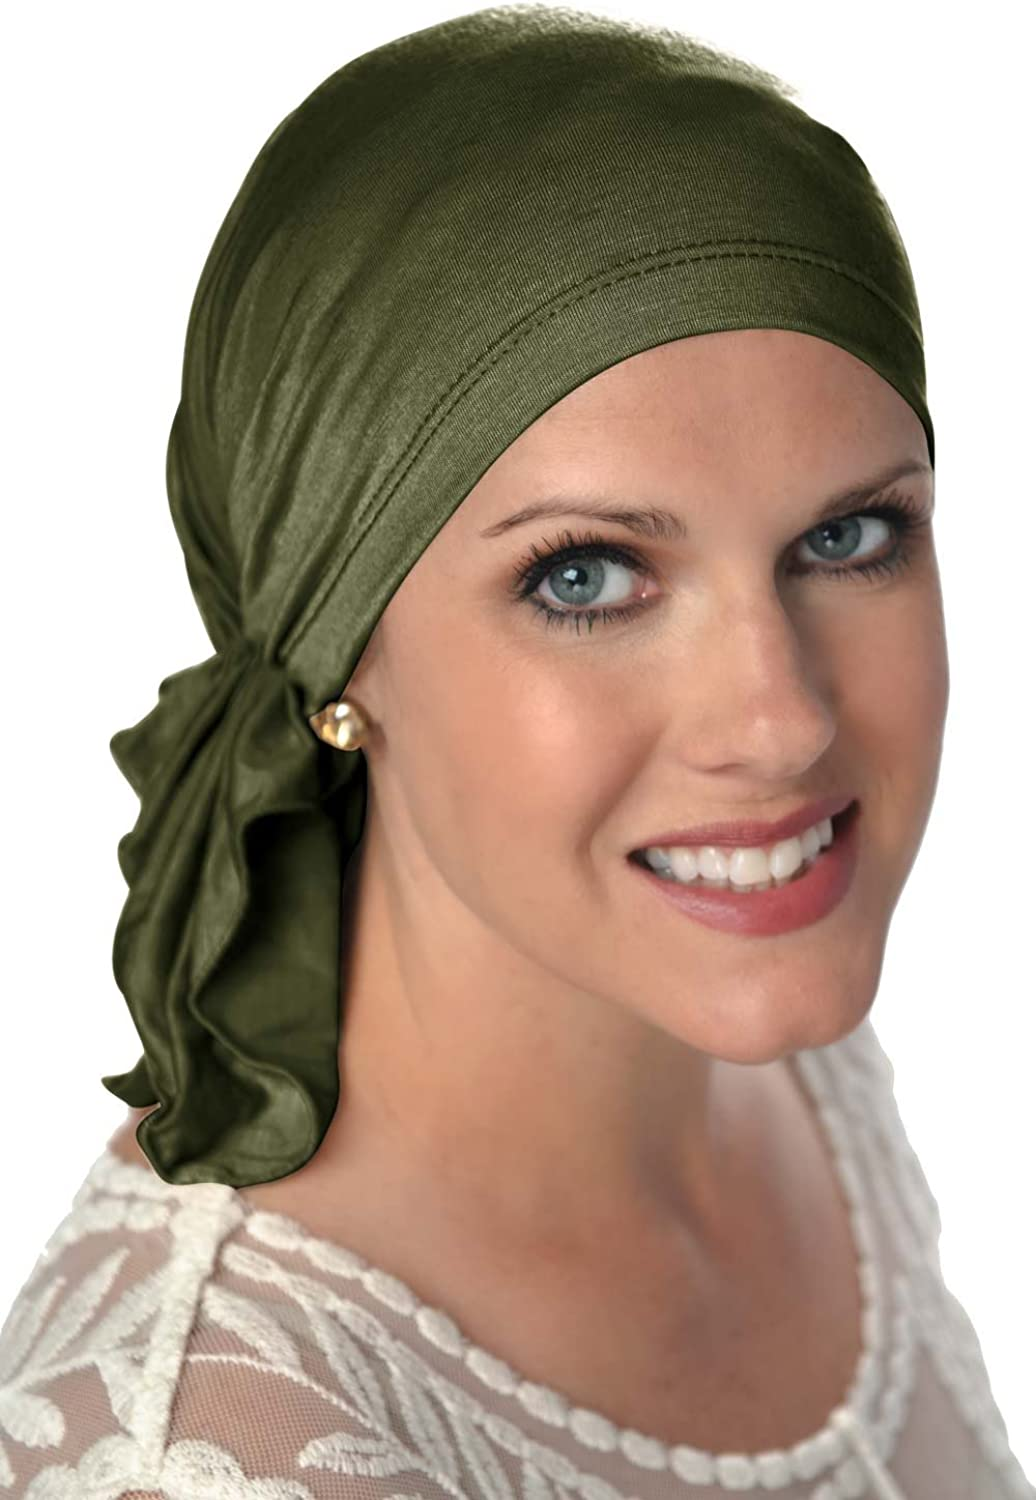 Cancer Headwear for Women False Headcovers Unlimited Slip-On Scarf